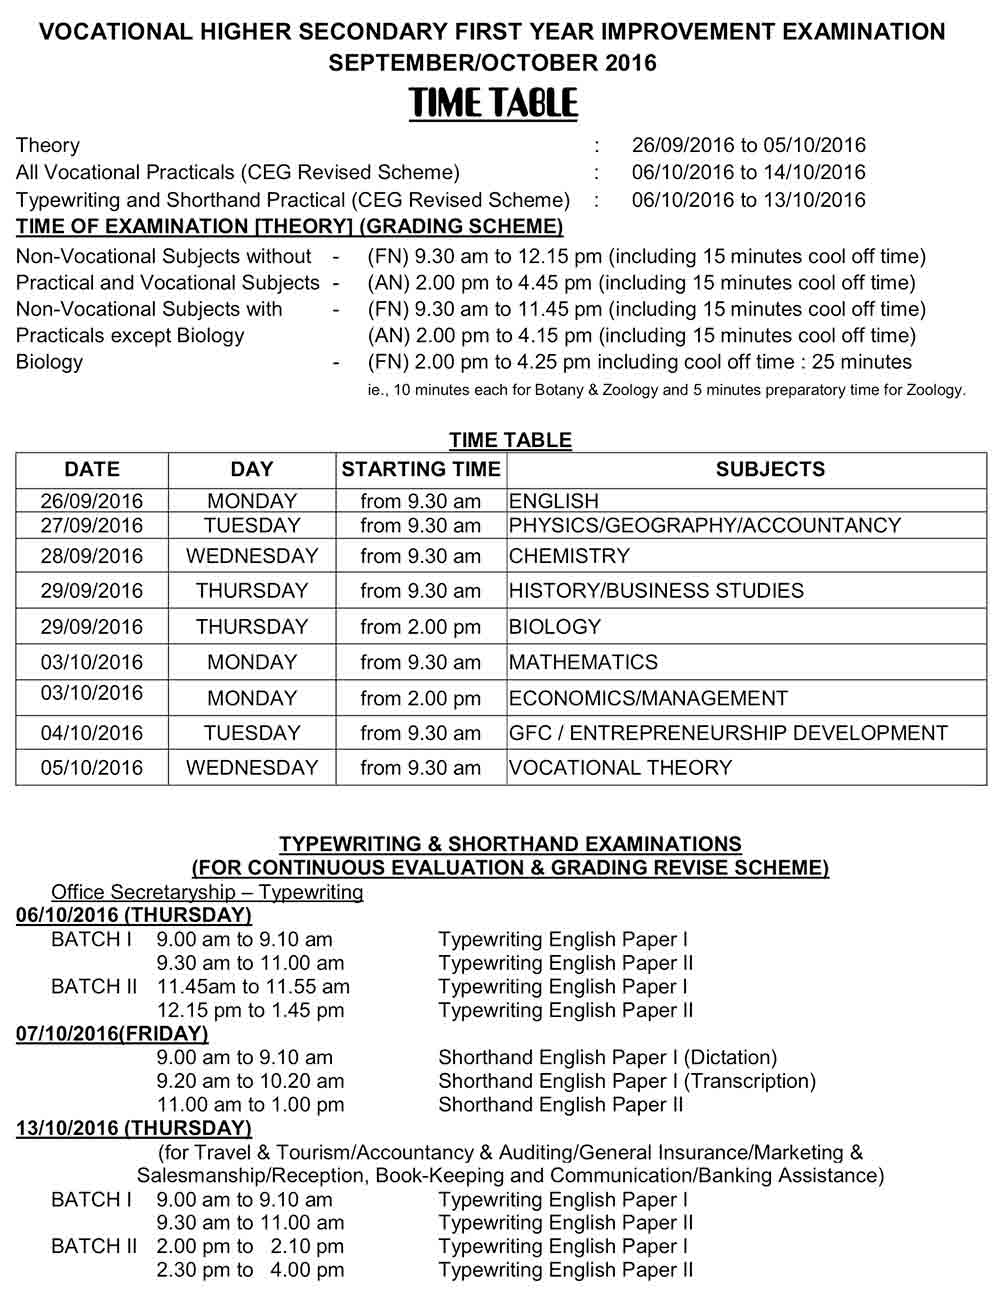 vhse plus one +1 first year improvement timetable 2016